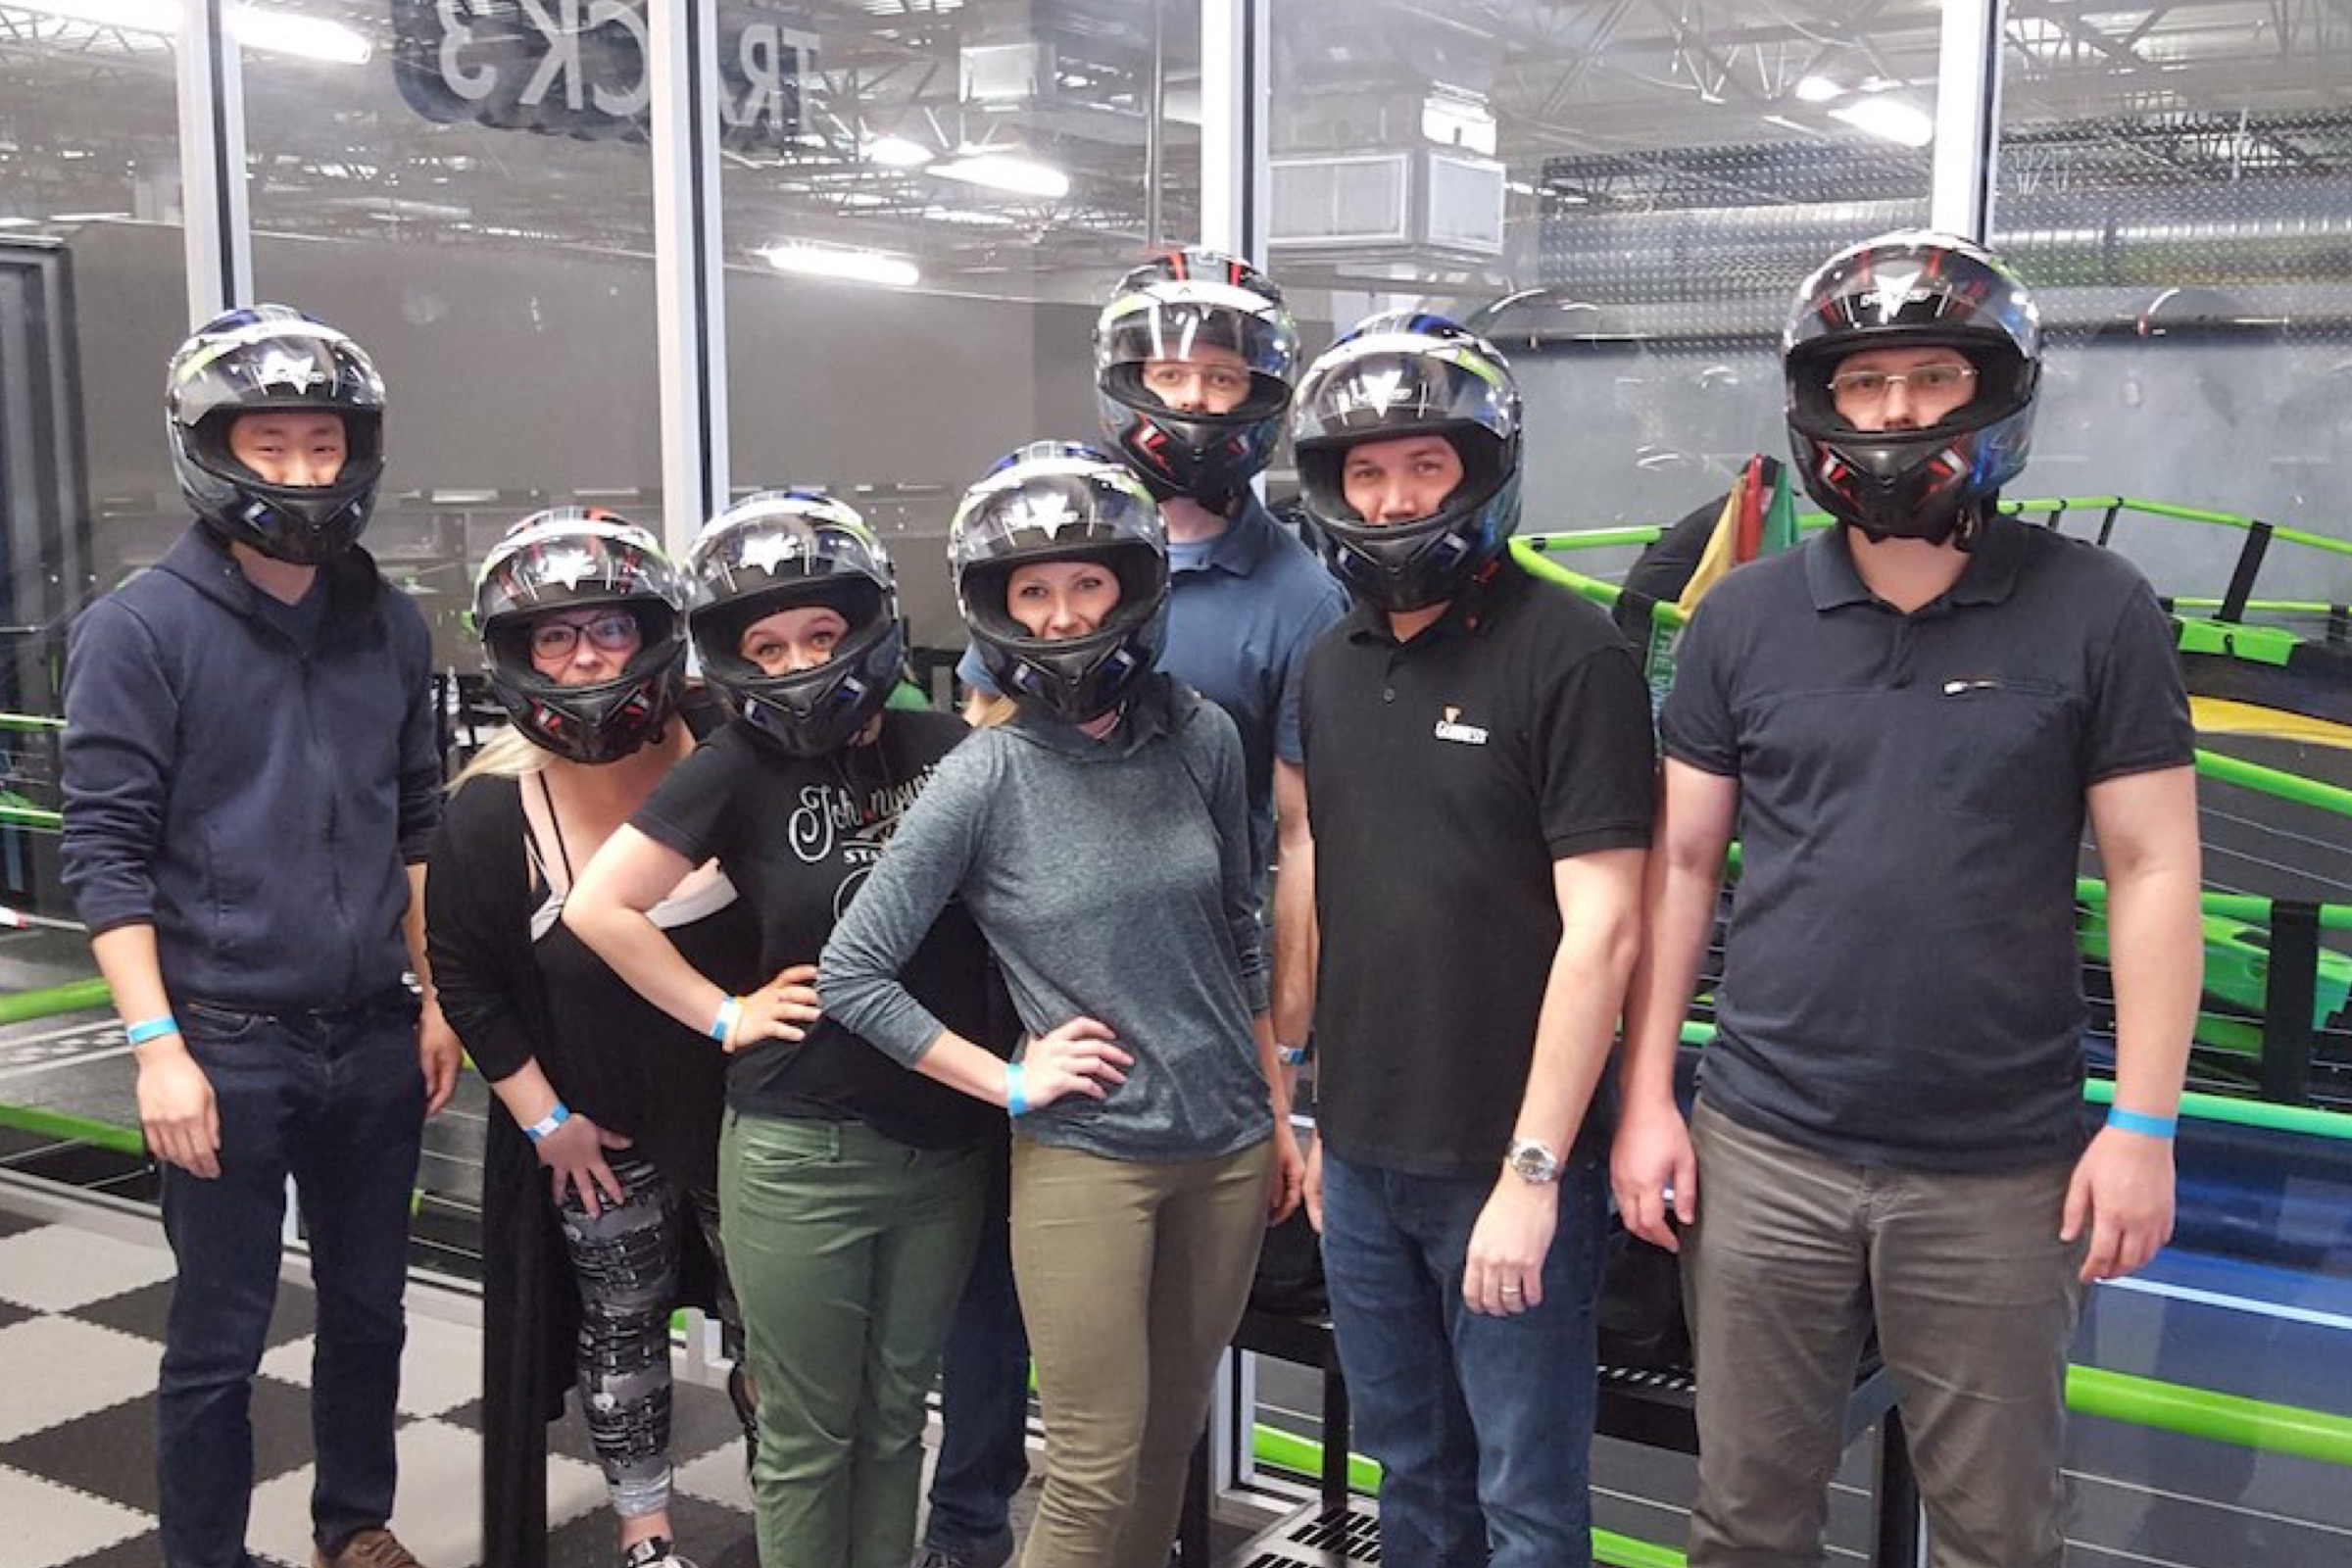 Getting ready to race electric go-karts on Friday's offsite at Andretti Indoor Karting